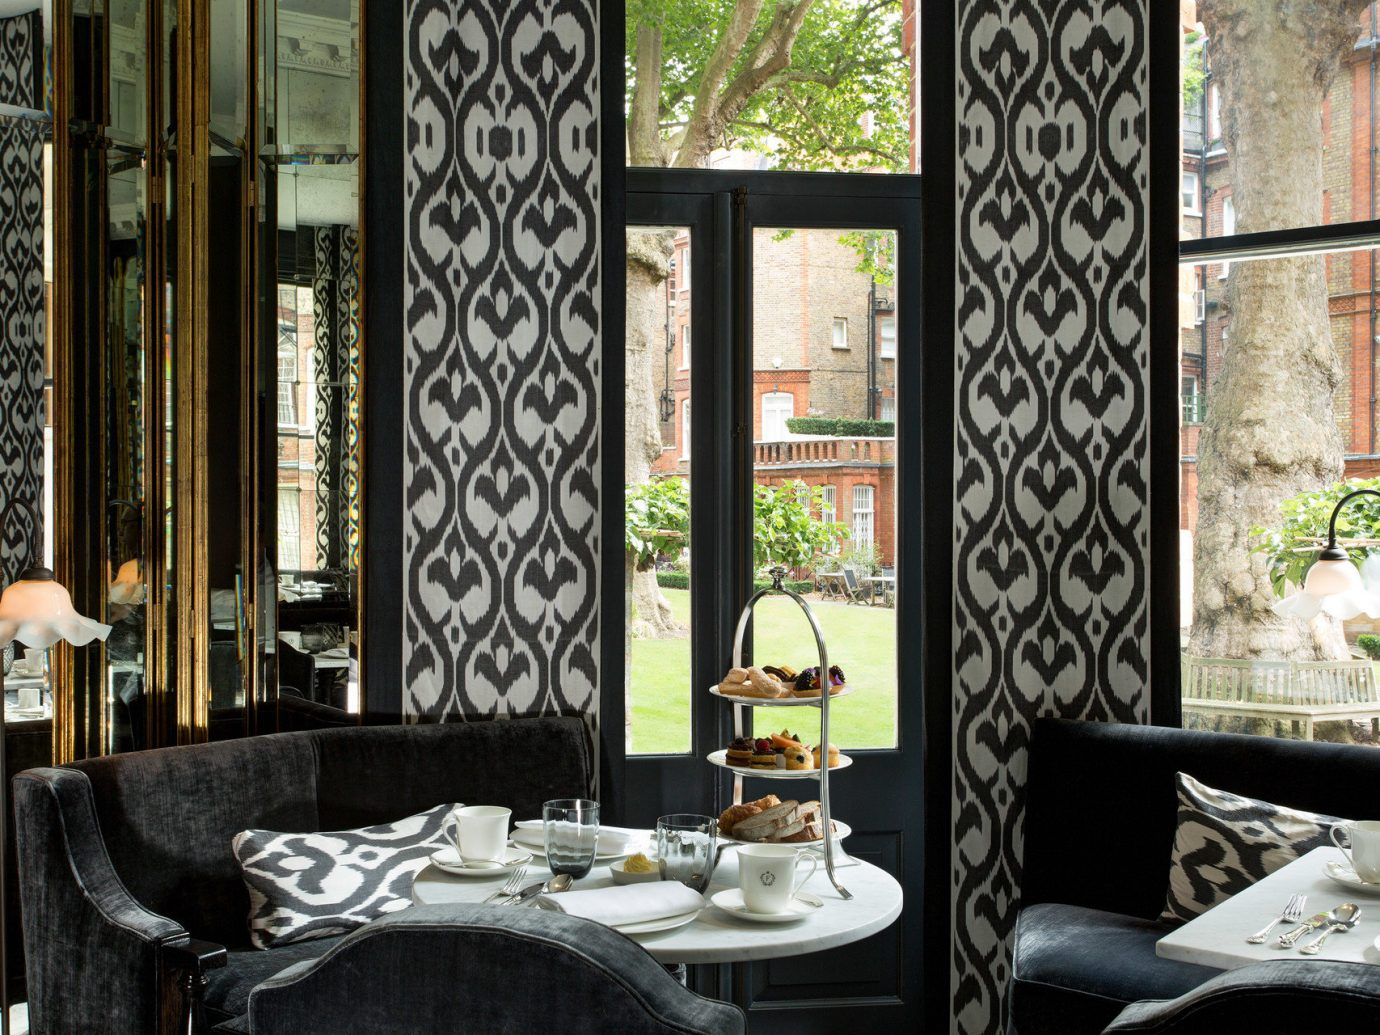 Boutique Hotels Hotels indoor room interior design home window living room curtain window covering estate window treatment Design textile cottage furniture